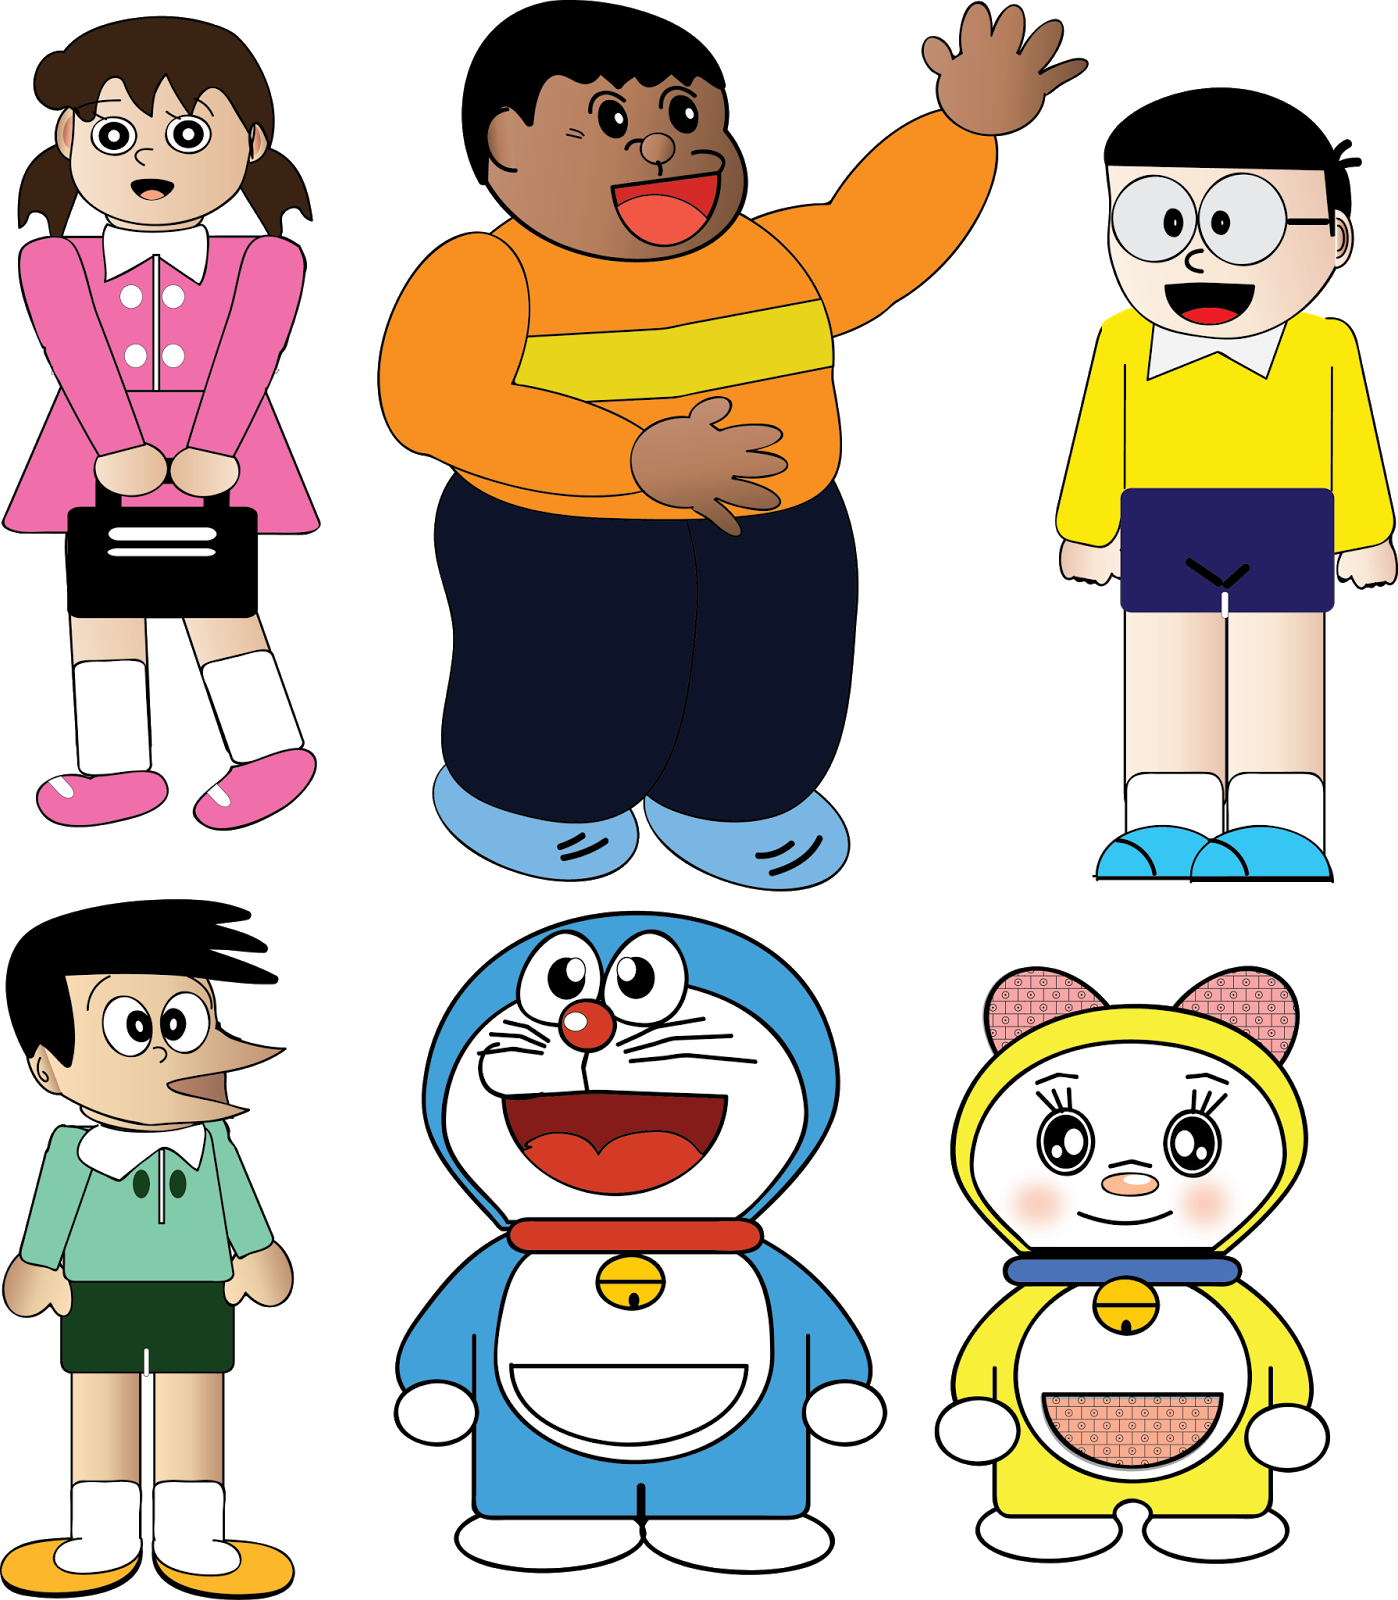 Mind s studio doraemon. Creative clipart team